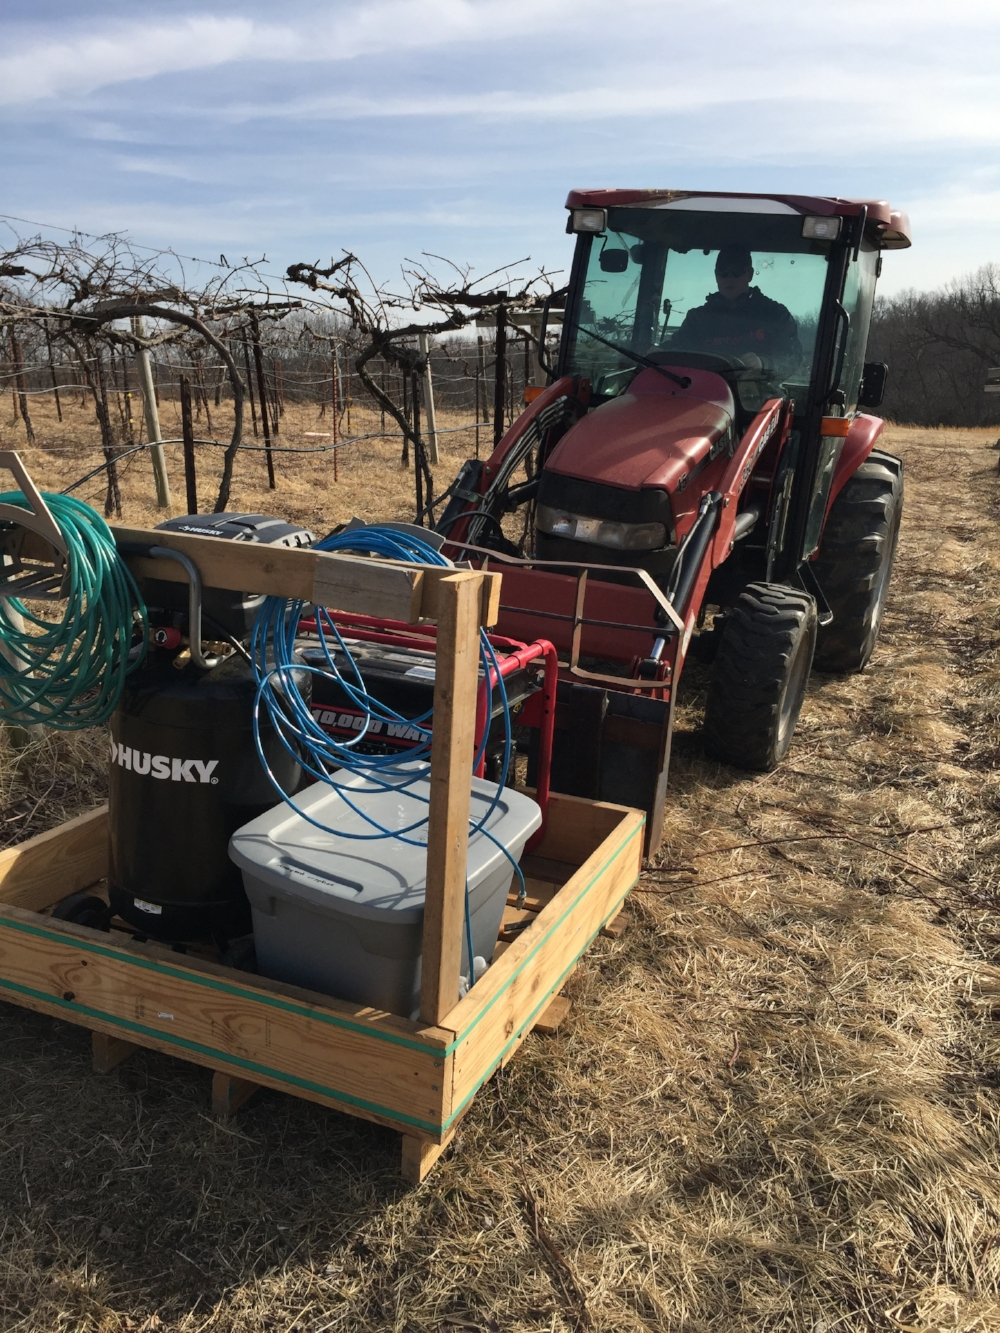 The pruning rig consists of a generator to run the compressor which powers the pruners.